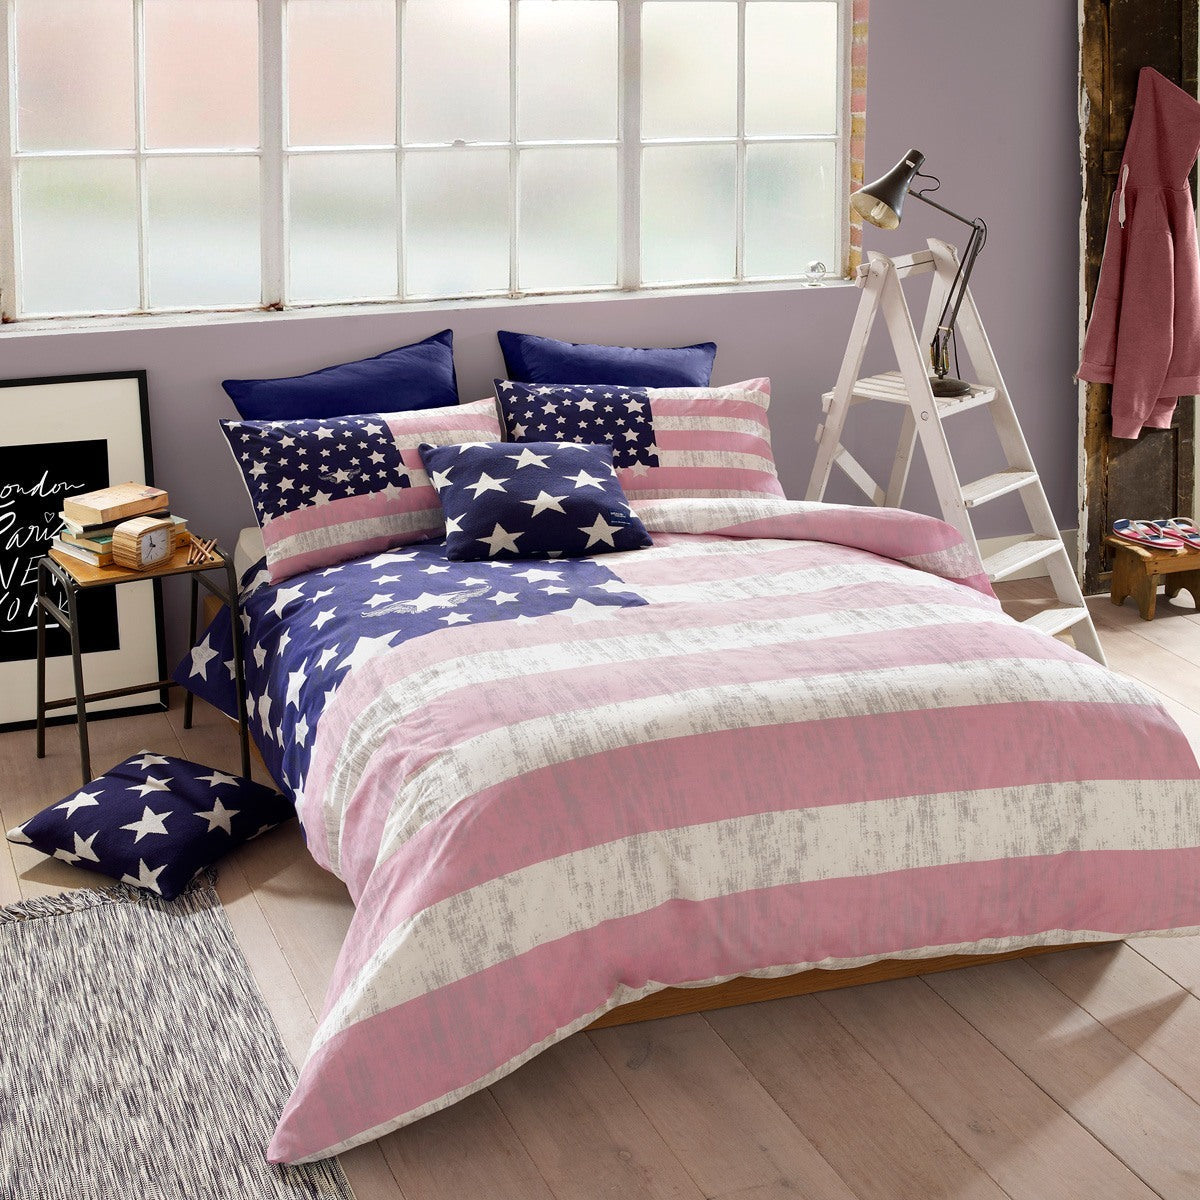 Ashley Wilde Bedding  American Freshman Lenox Bedding Pink